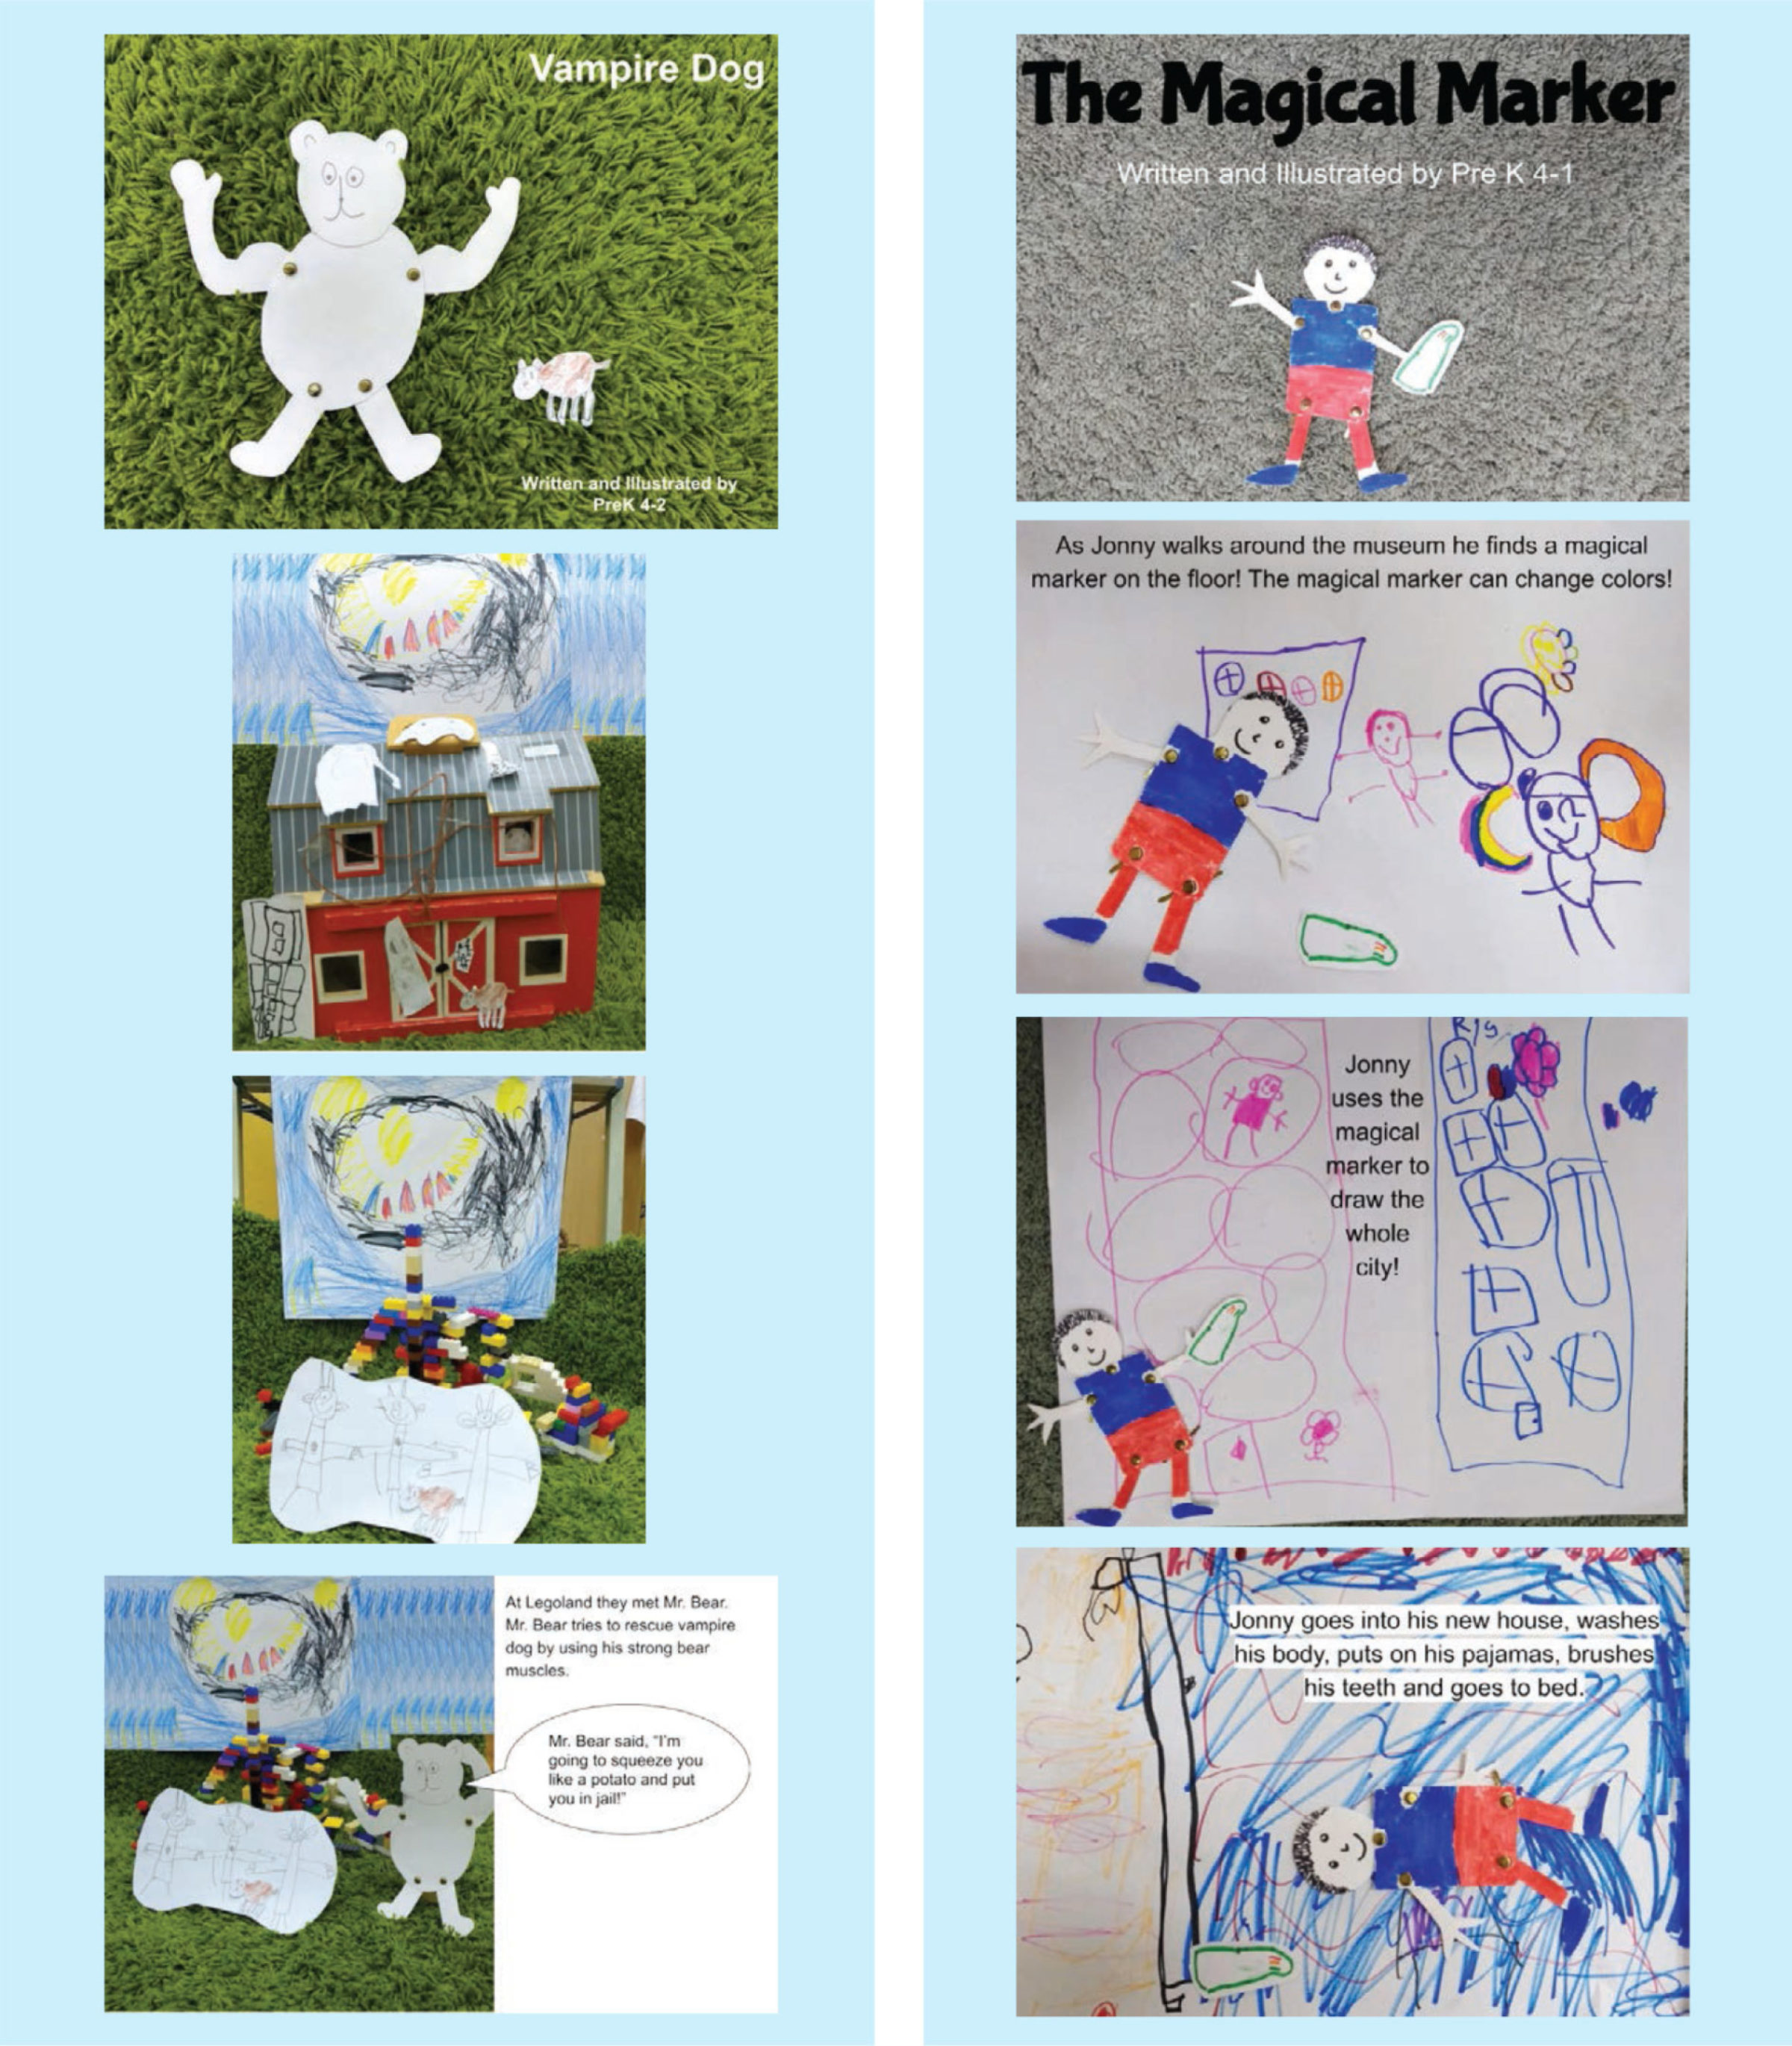 PreK 4 Integrated ELA/Visual Arts Project